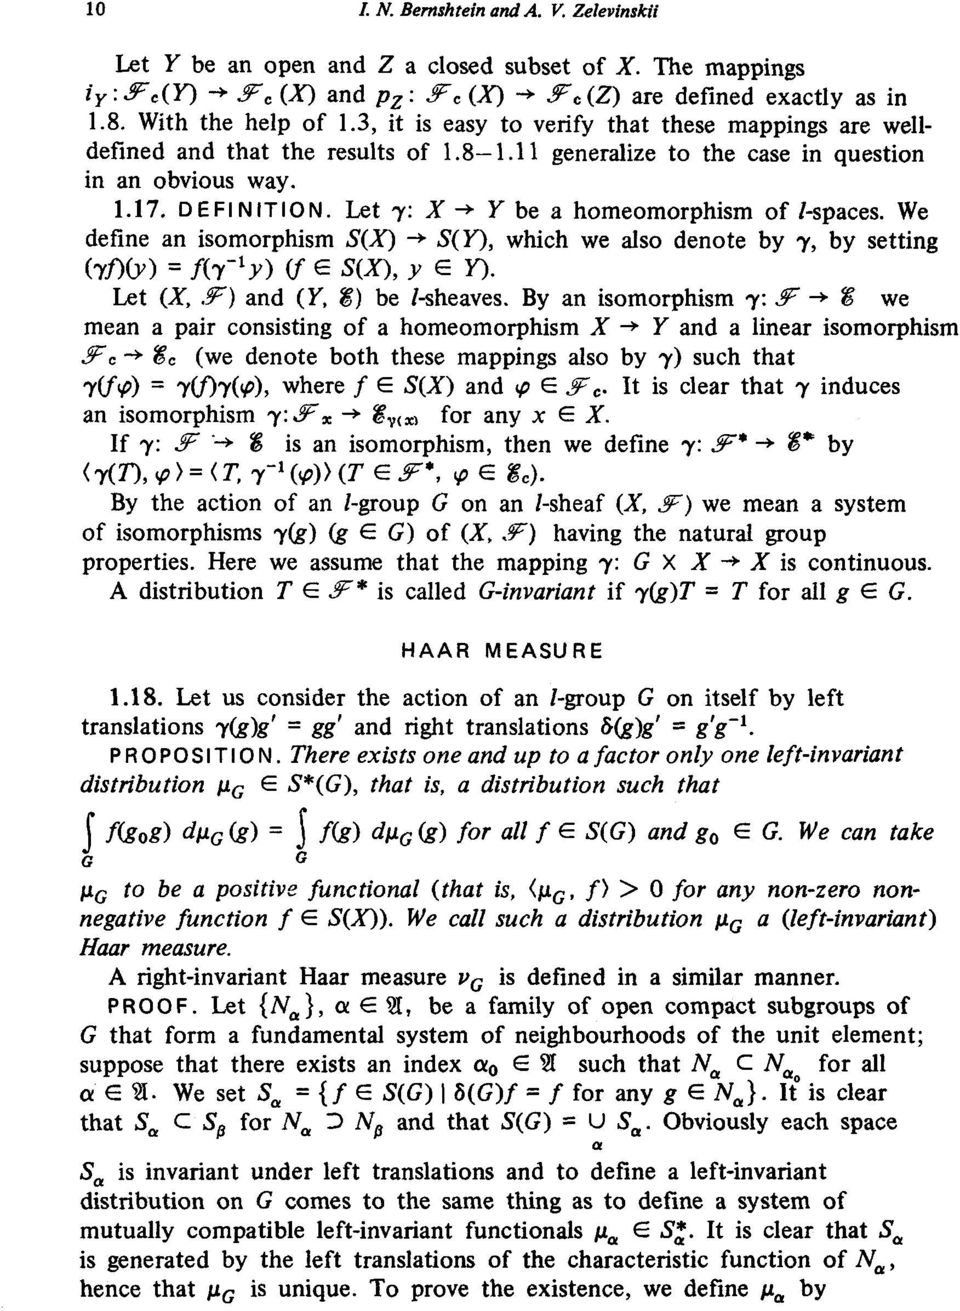 an obvious way 117 DEFINITION Let 7: X -* Υ be a homeomorphism of /-spaces We define an isomorphism S(X) -* S(Y), which we also denote by 7, by setting (τλοο = Ai~ x y) (f e S(X), y e Y) Let (X, 3F)